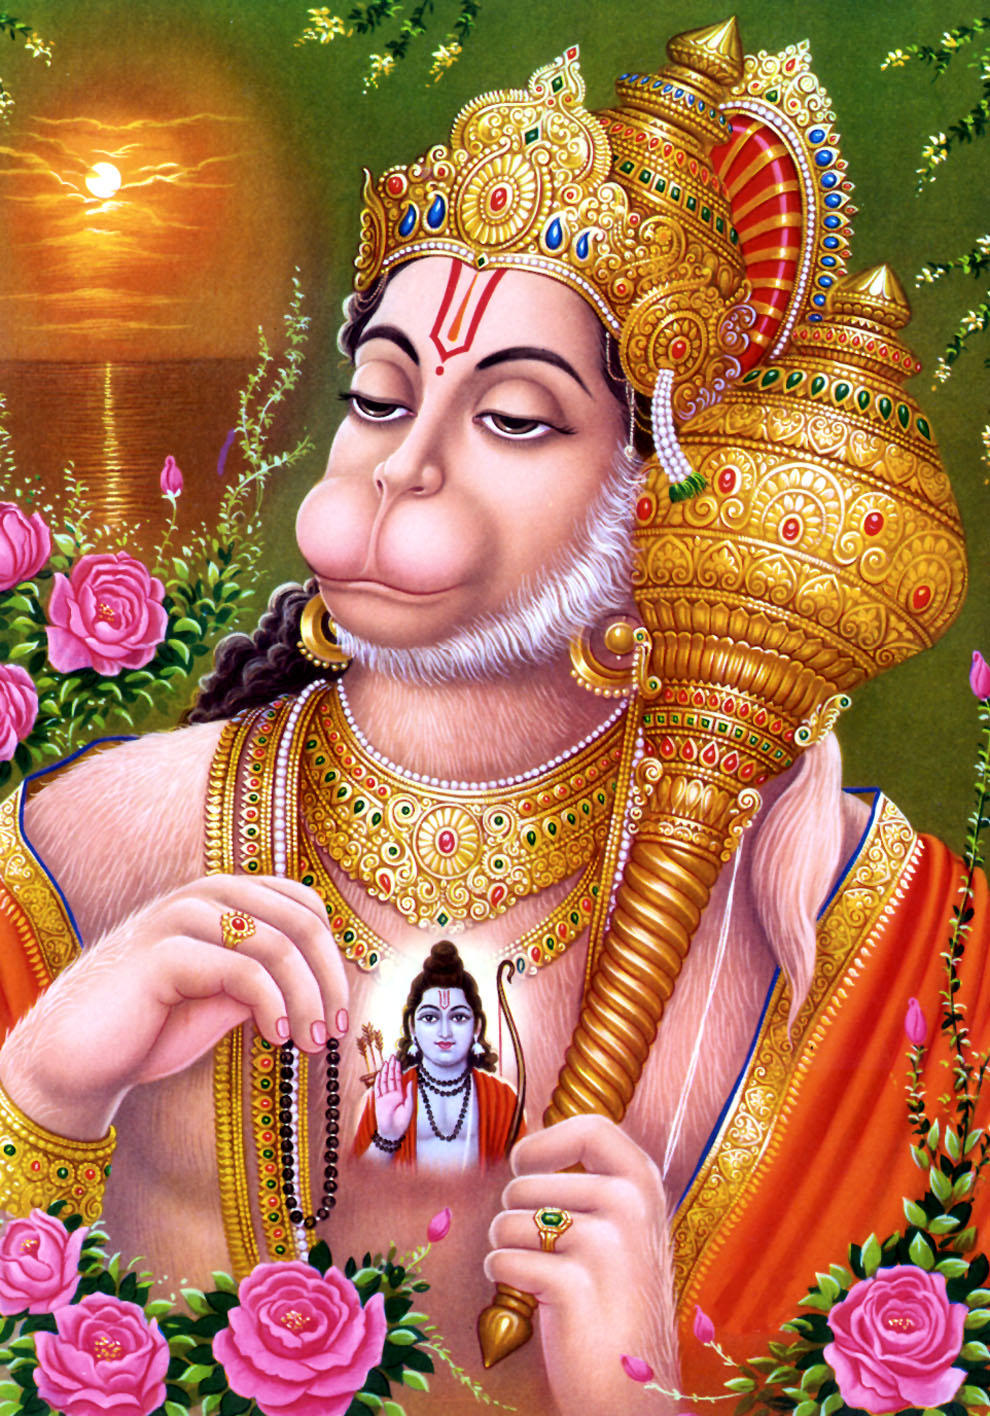 hanuman chalisa term paper sample 1388 words ihassignmentedbr